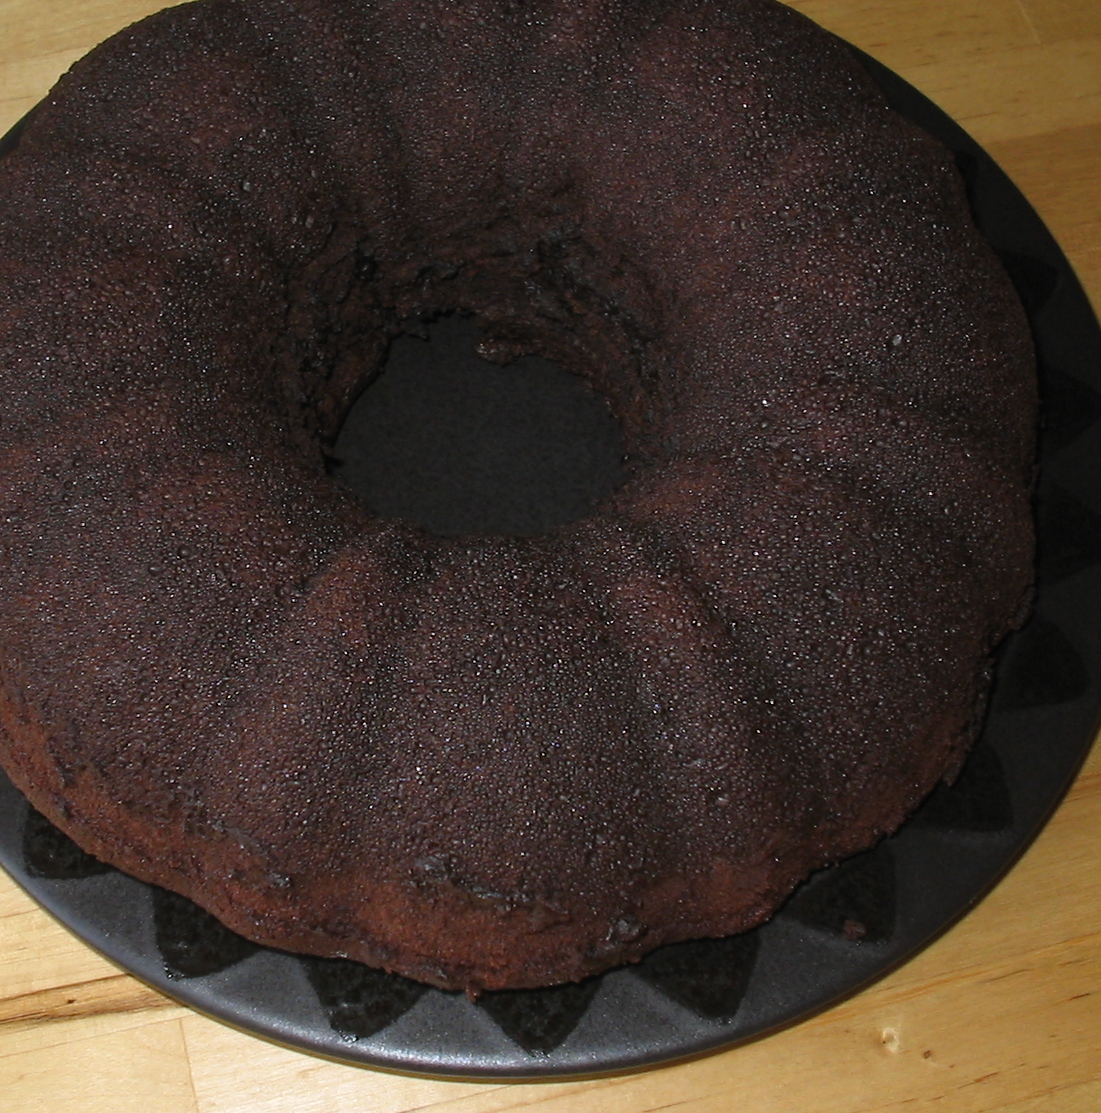 File:Chocolate Bundt cake.jpg - Wikimedia Commons